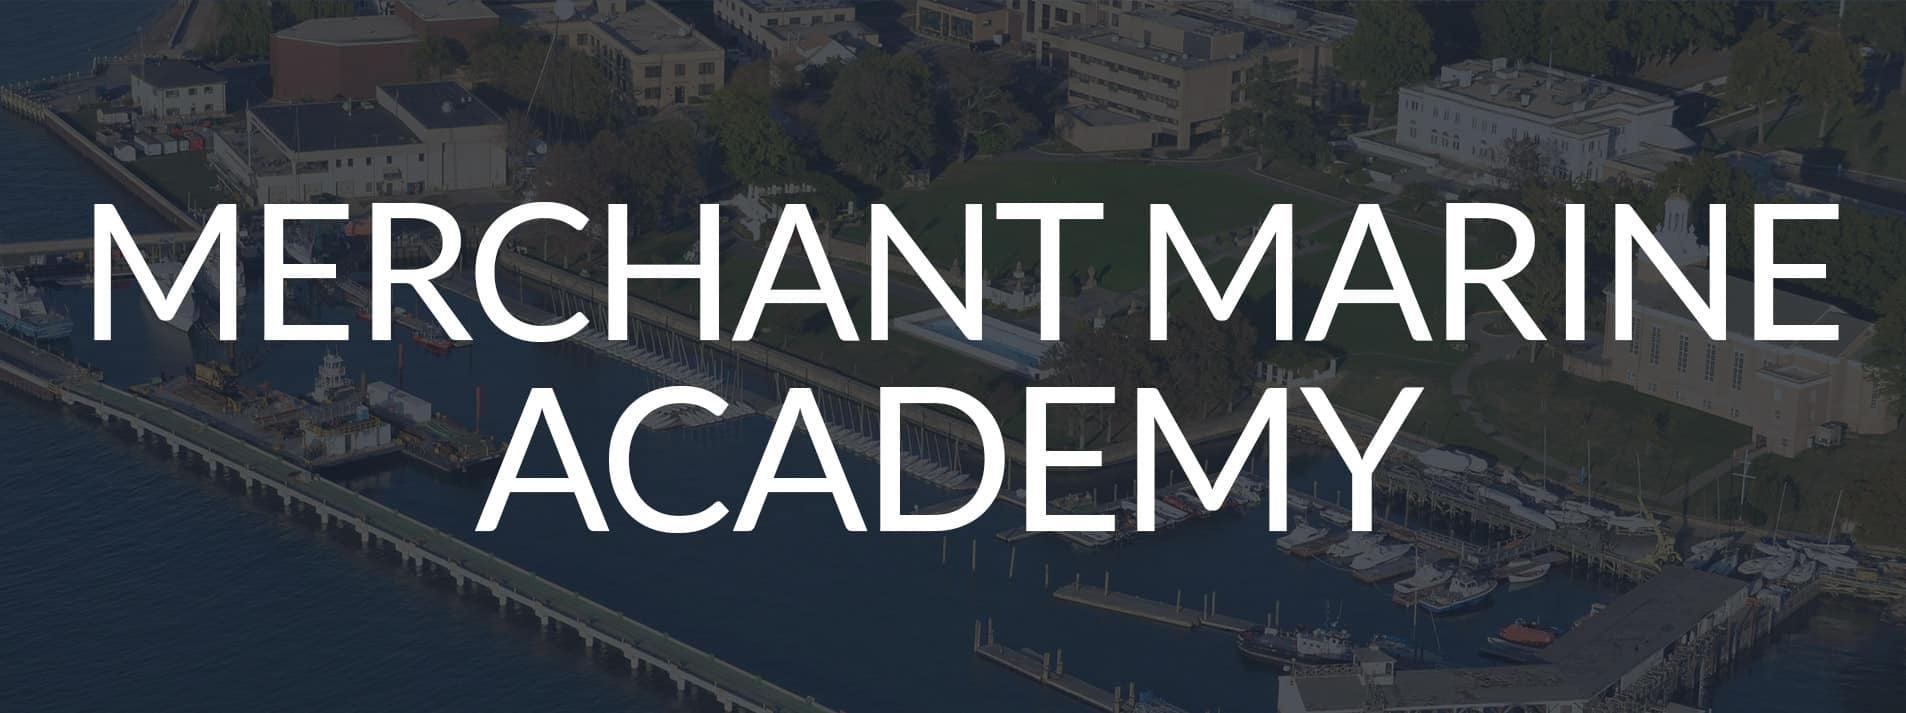 Merchant Marine Academy page button